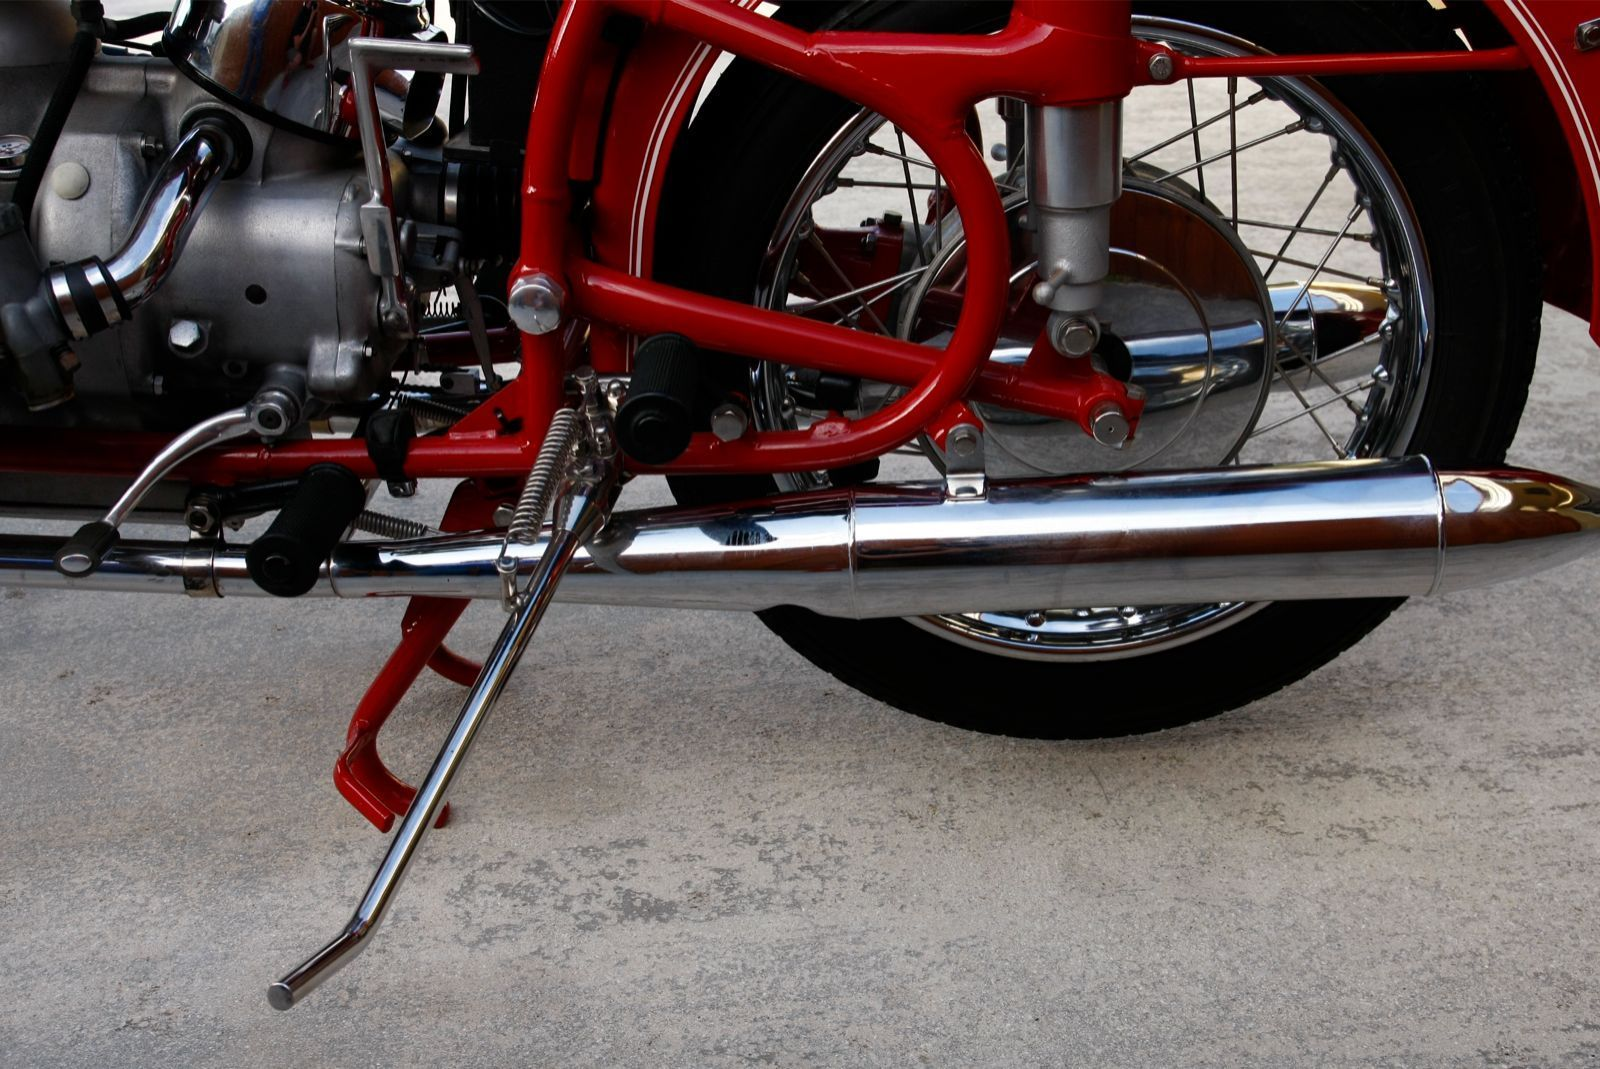 BMW R60/2 - 1966 - Rear Wheel, Frame, Stand and Muffler.